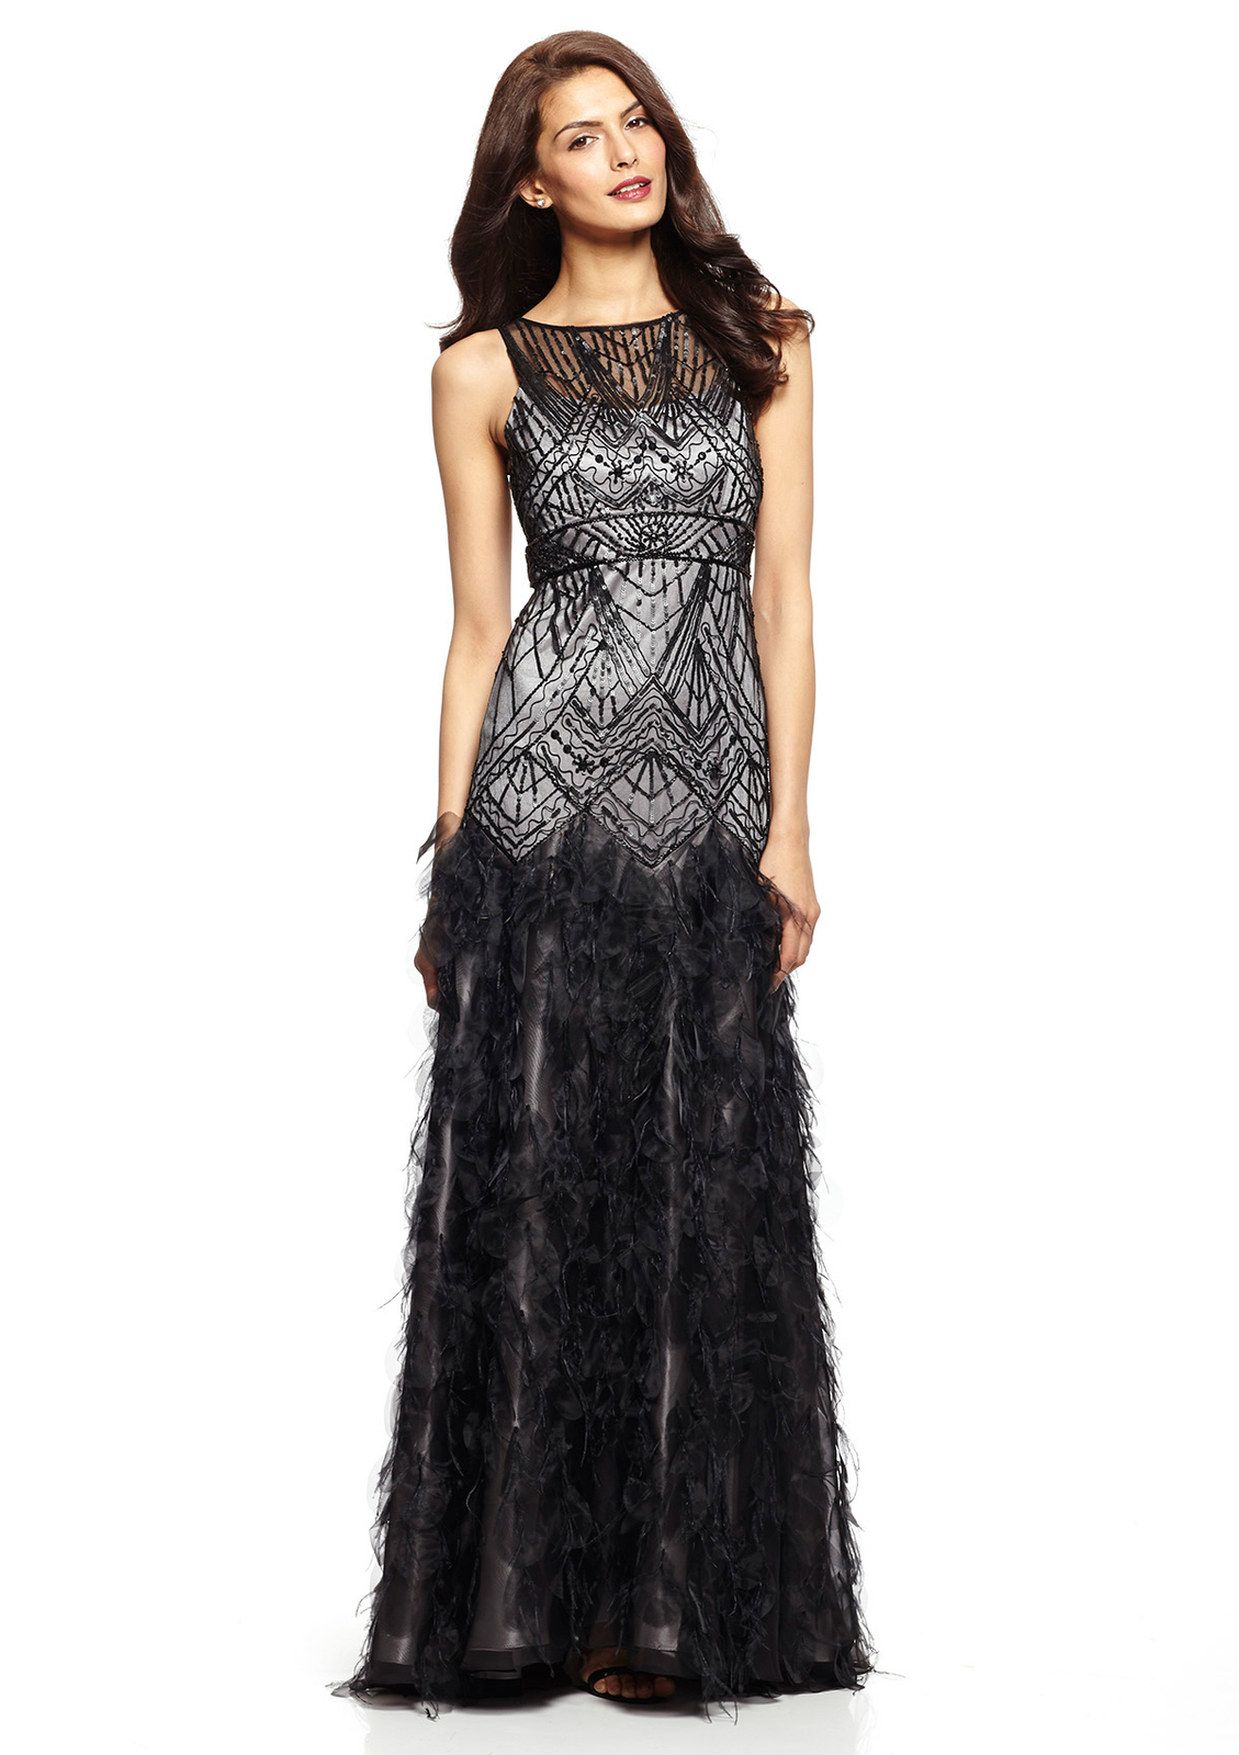 ideeli | SUE WONG Ball Gown with Feather Detail $349.99 | My Style ...